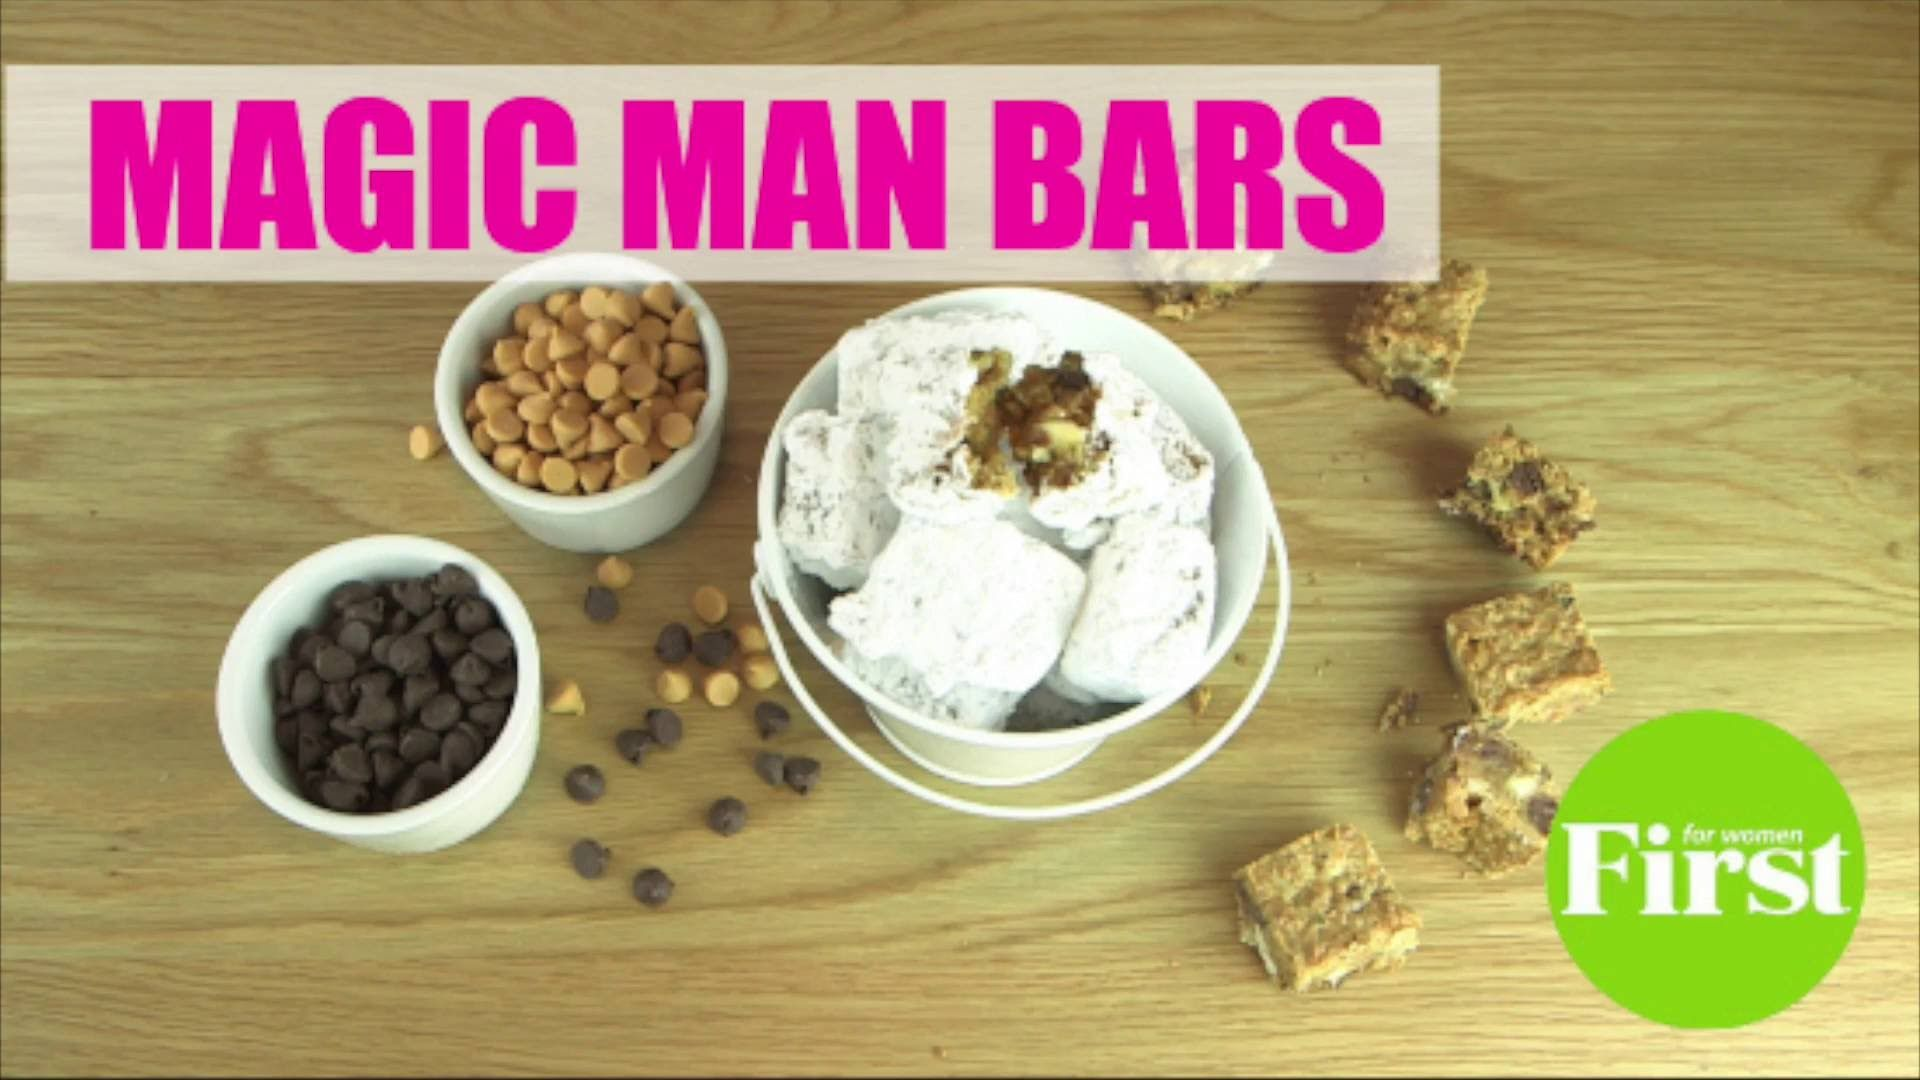 Magic Man Bars Recipe Tutorial Video. Delicious 7 layer bar and magic bar dessert rolled into one!